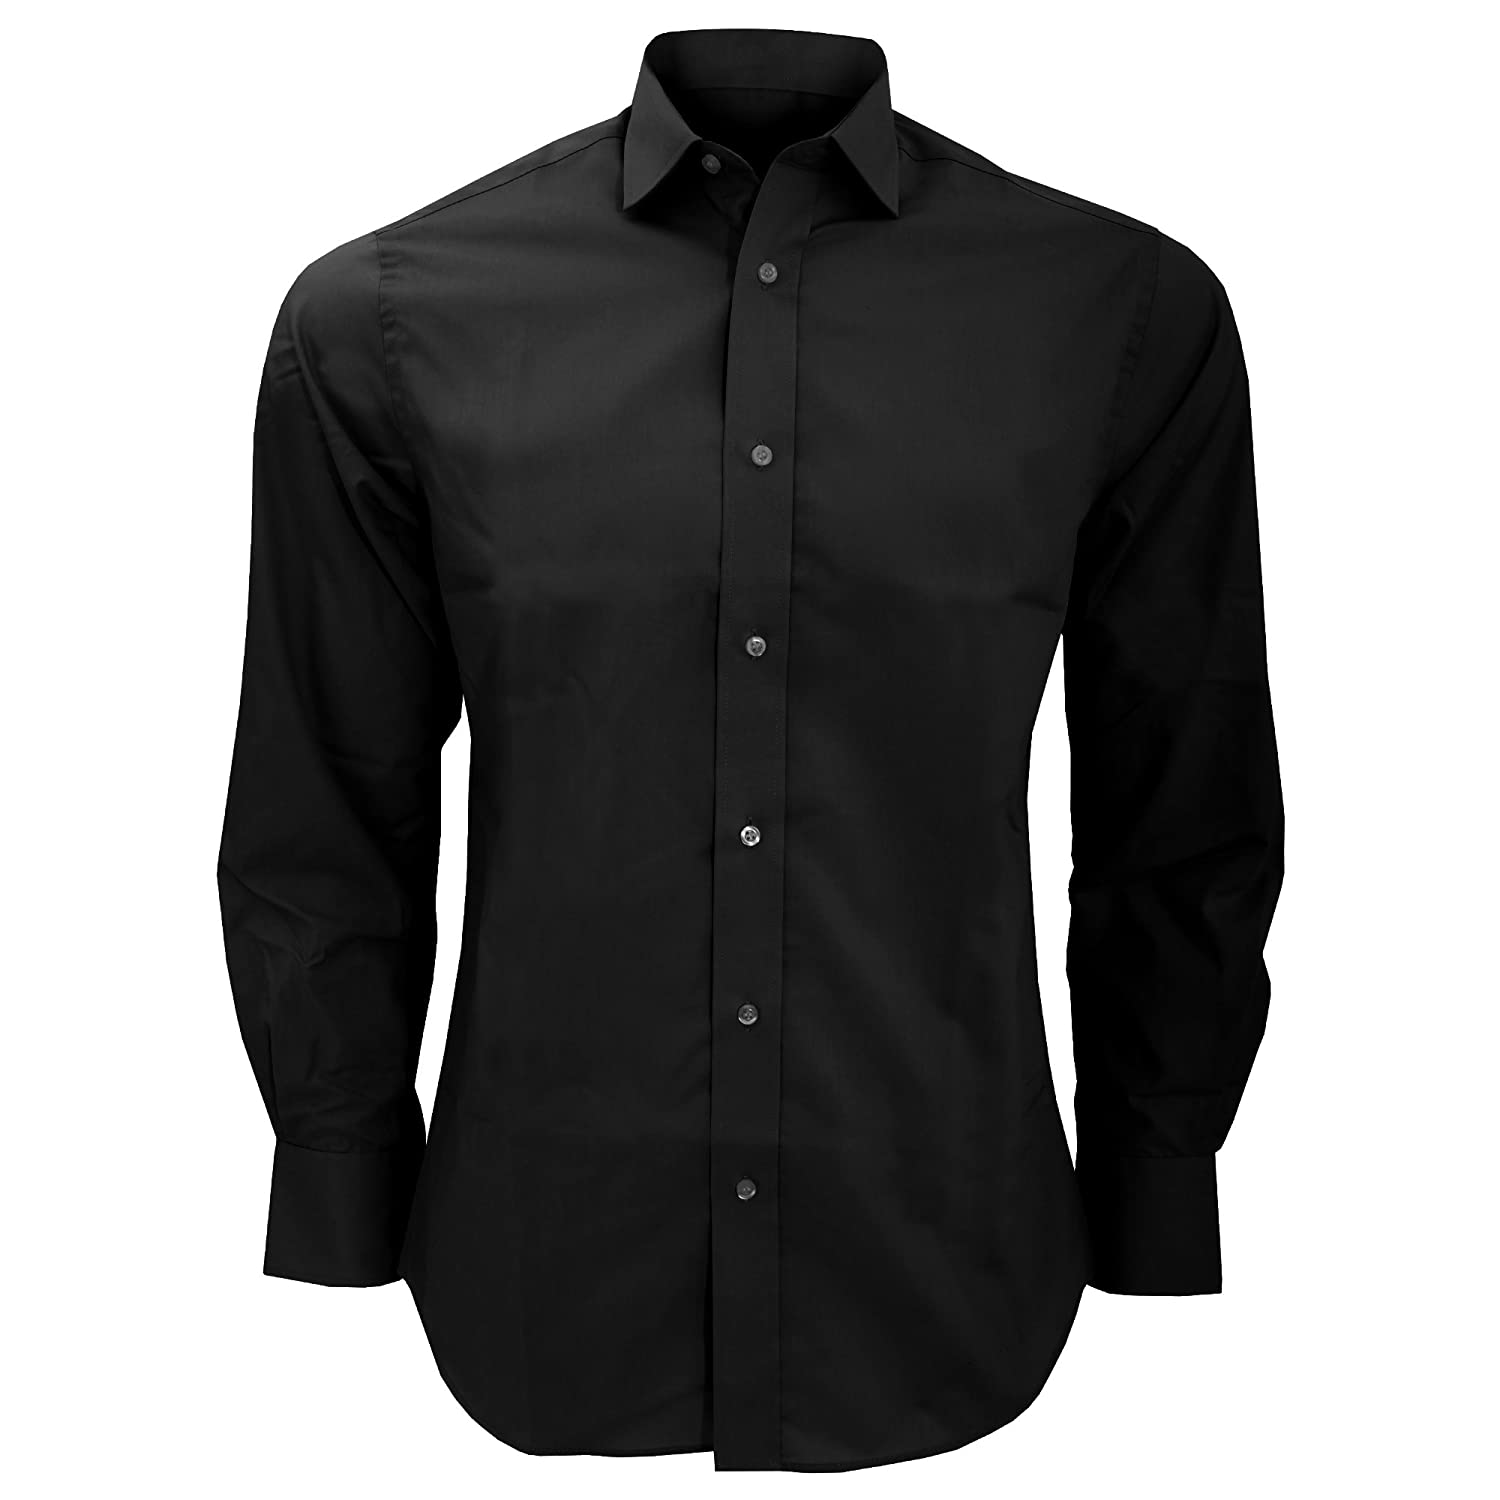 KUSTOM KIT Mens Tailored Fit Long Sleeved Business Shirt (18.5inch) (Black) UTBC600_9